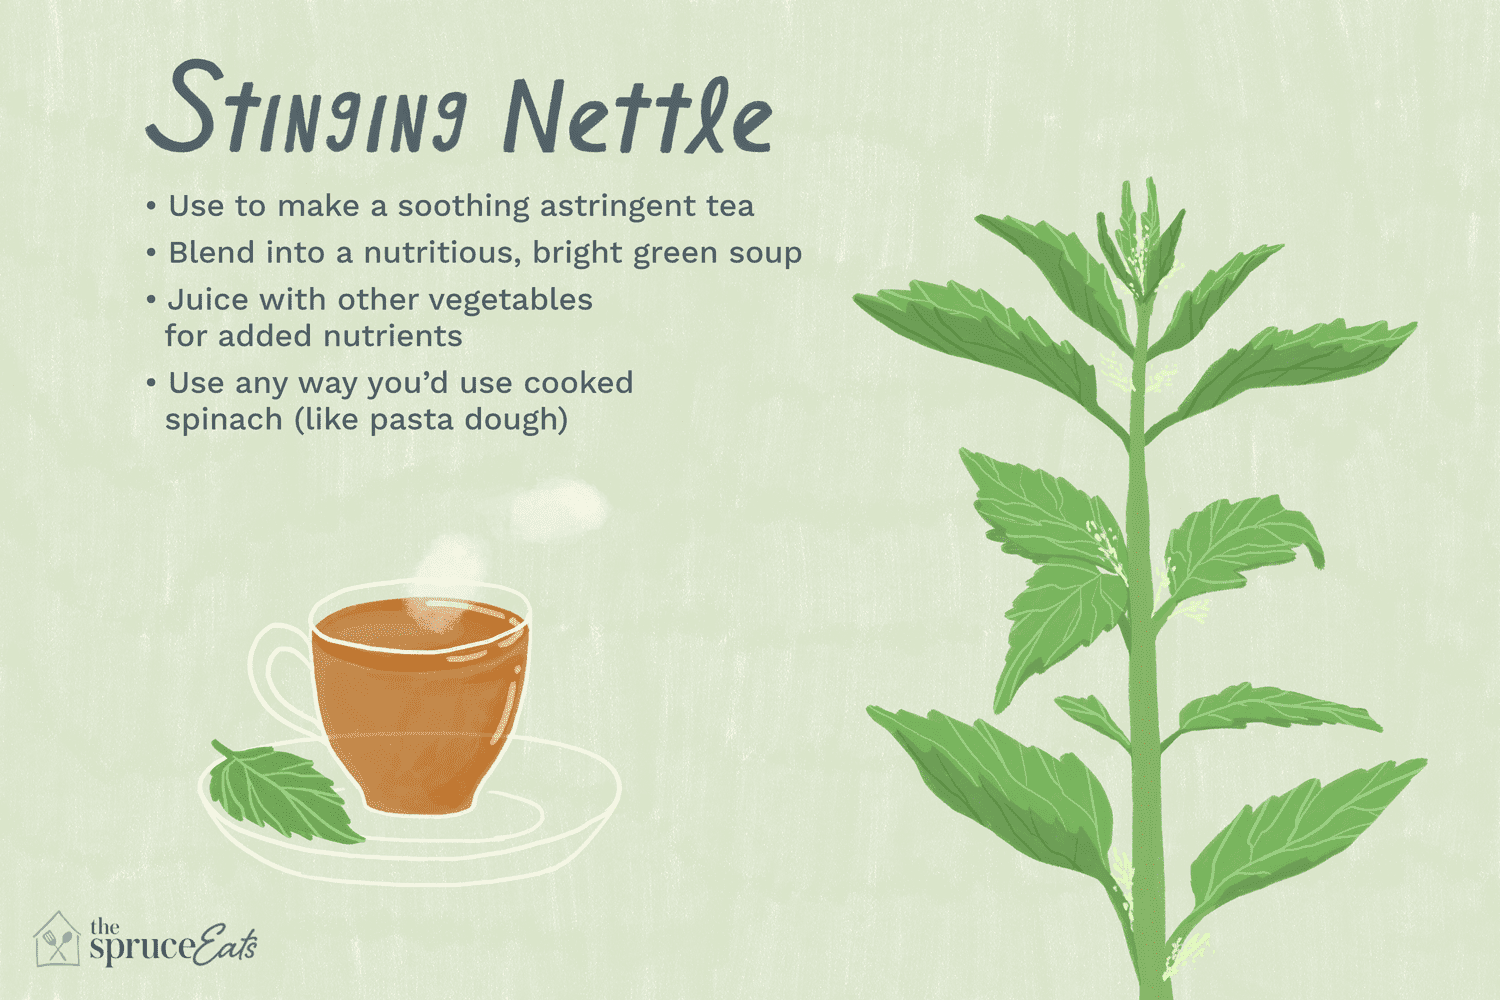 what is stinging nettle